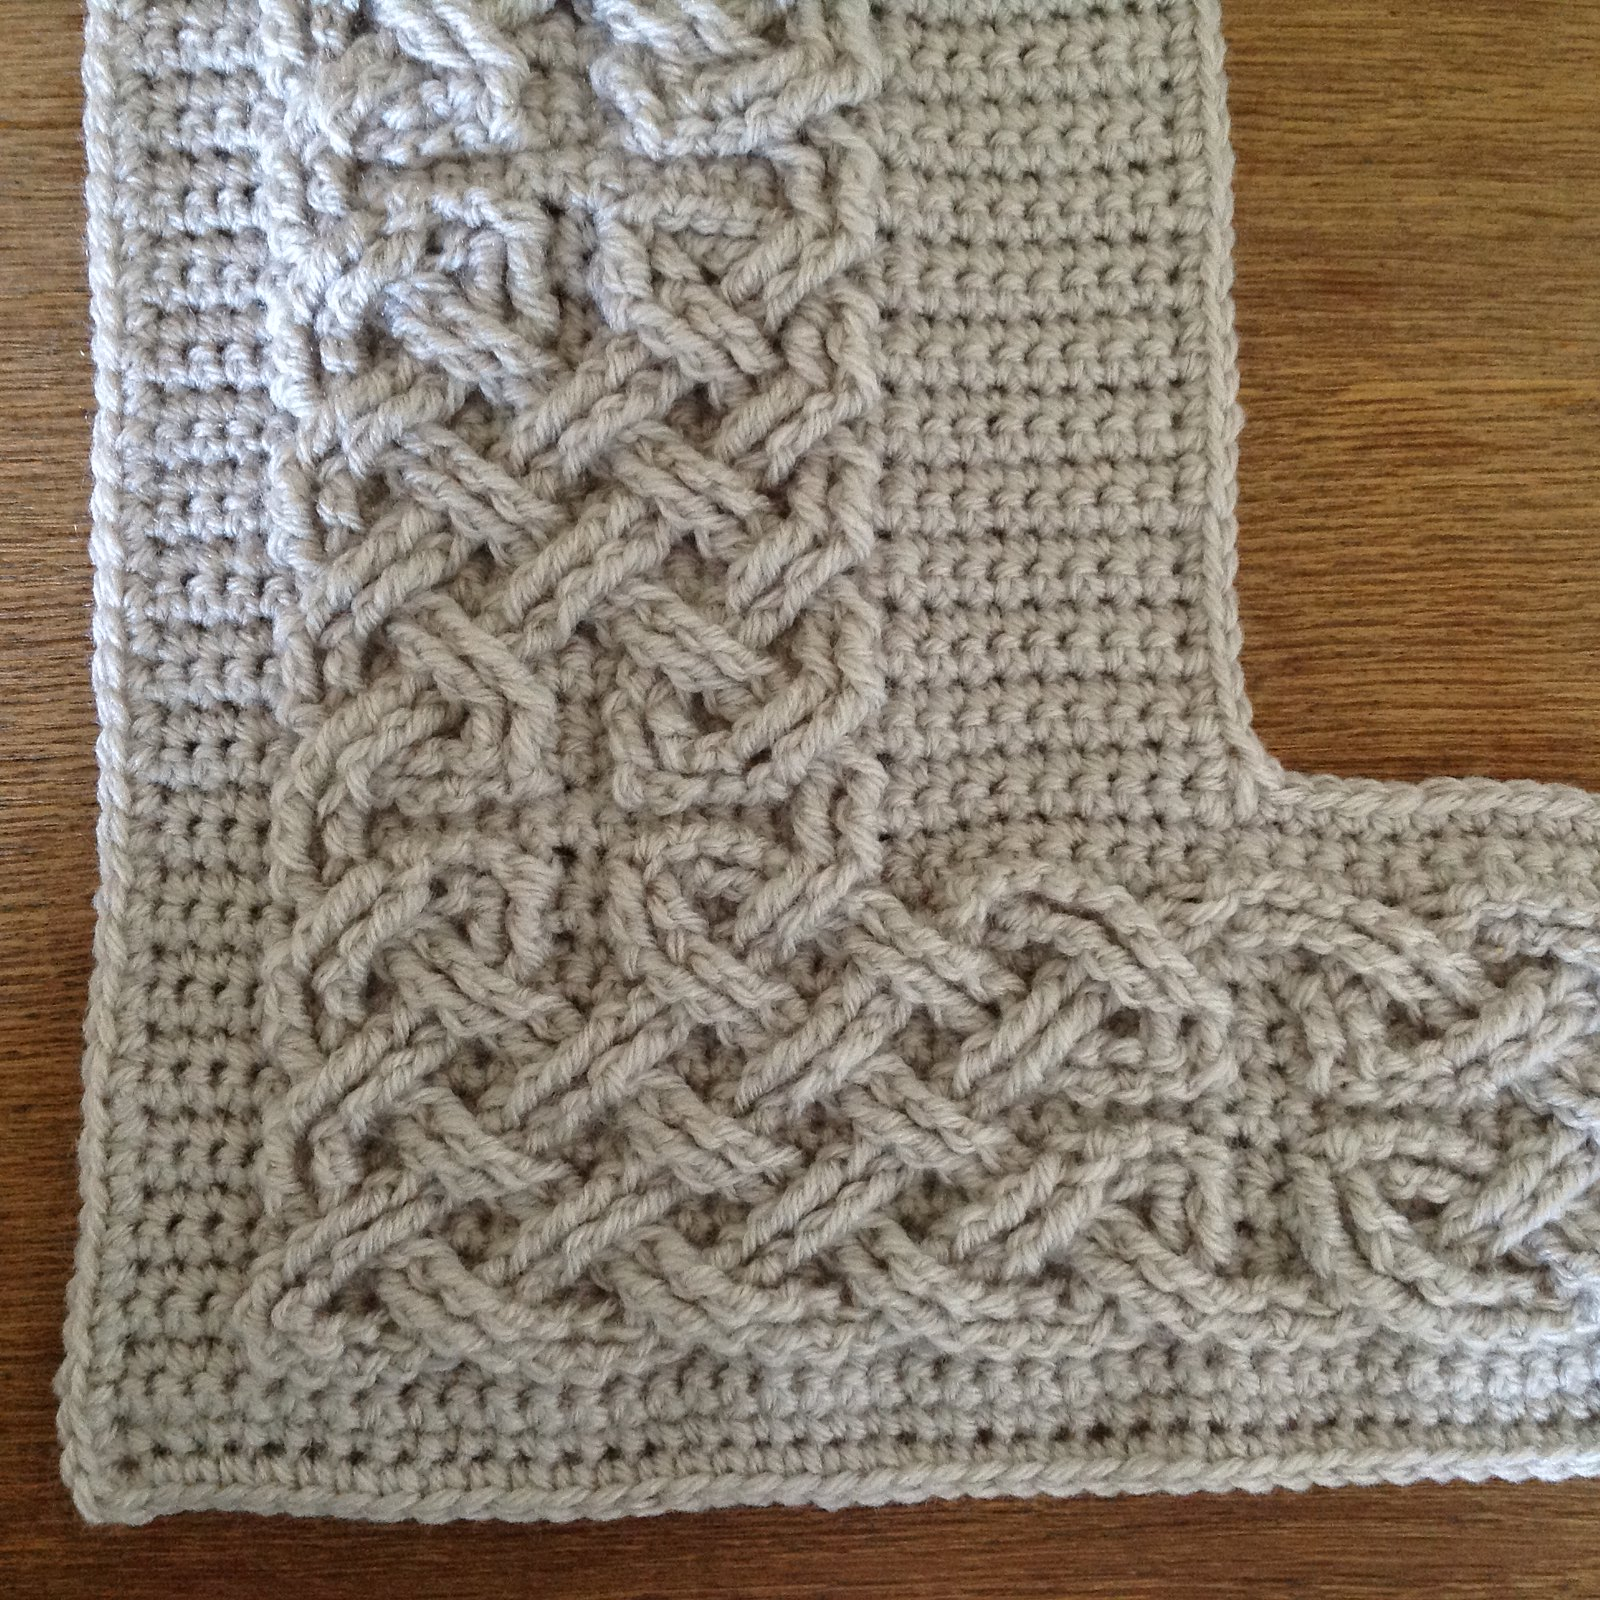 Crochet Cable Stitch Afghan Patterns Quotes